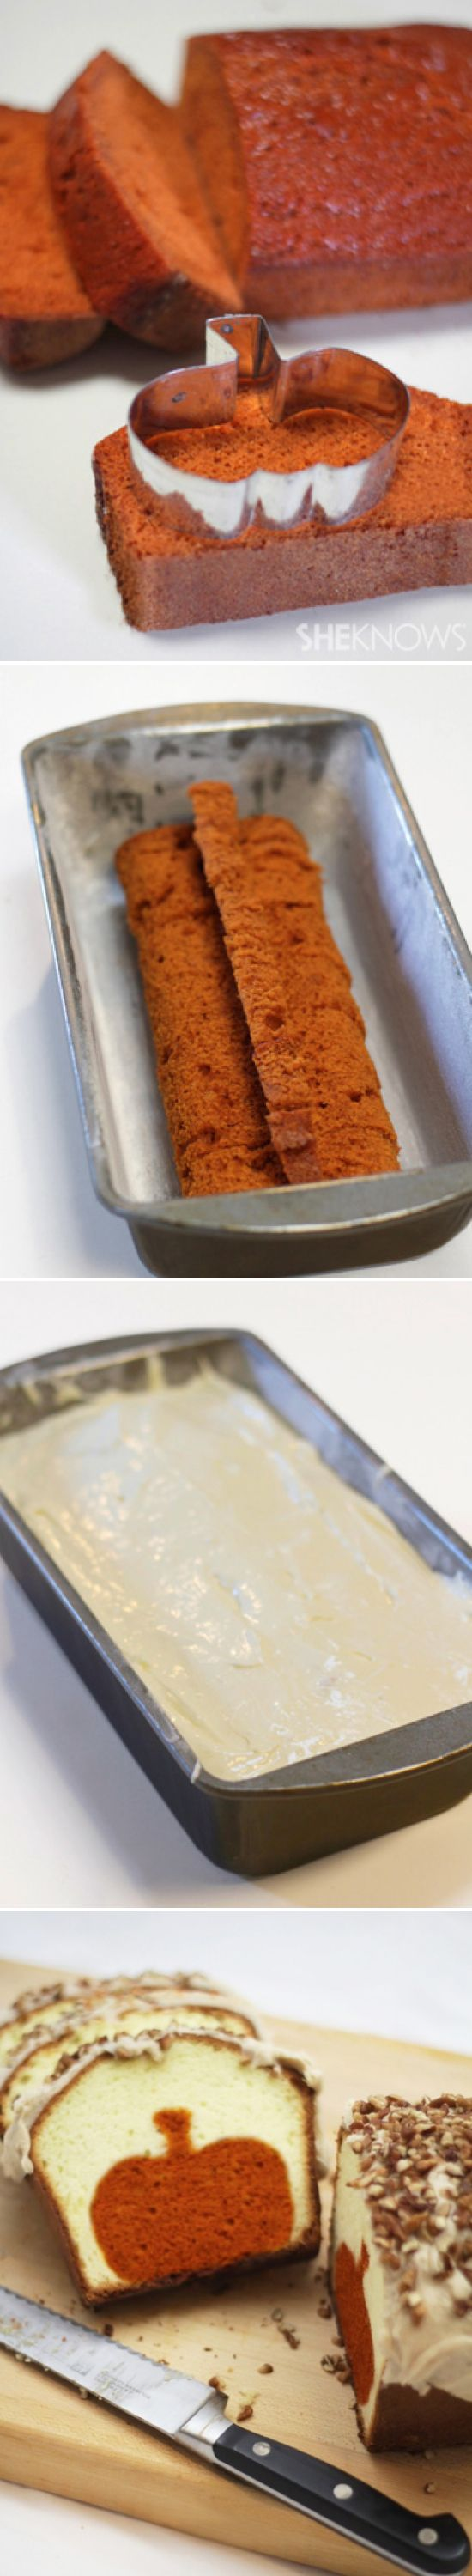 how to make a shape inside a loaf cake